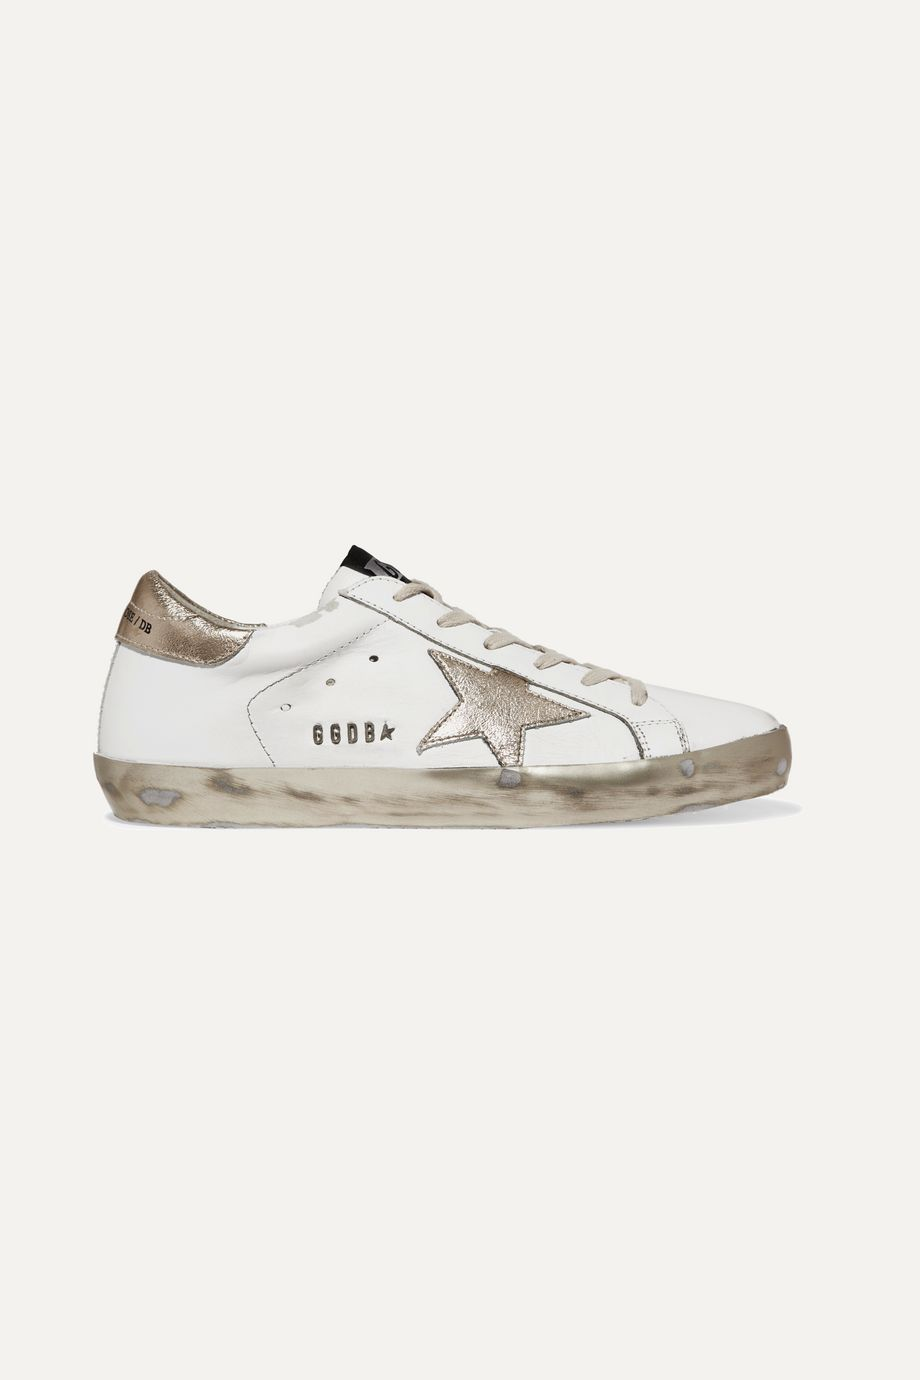 Superstar distressed leather sneakers by Golden Goose, available on net-a-porter.com for $515 Alessandra Ambrosio Shoes Exact Product